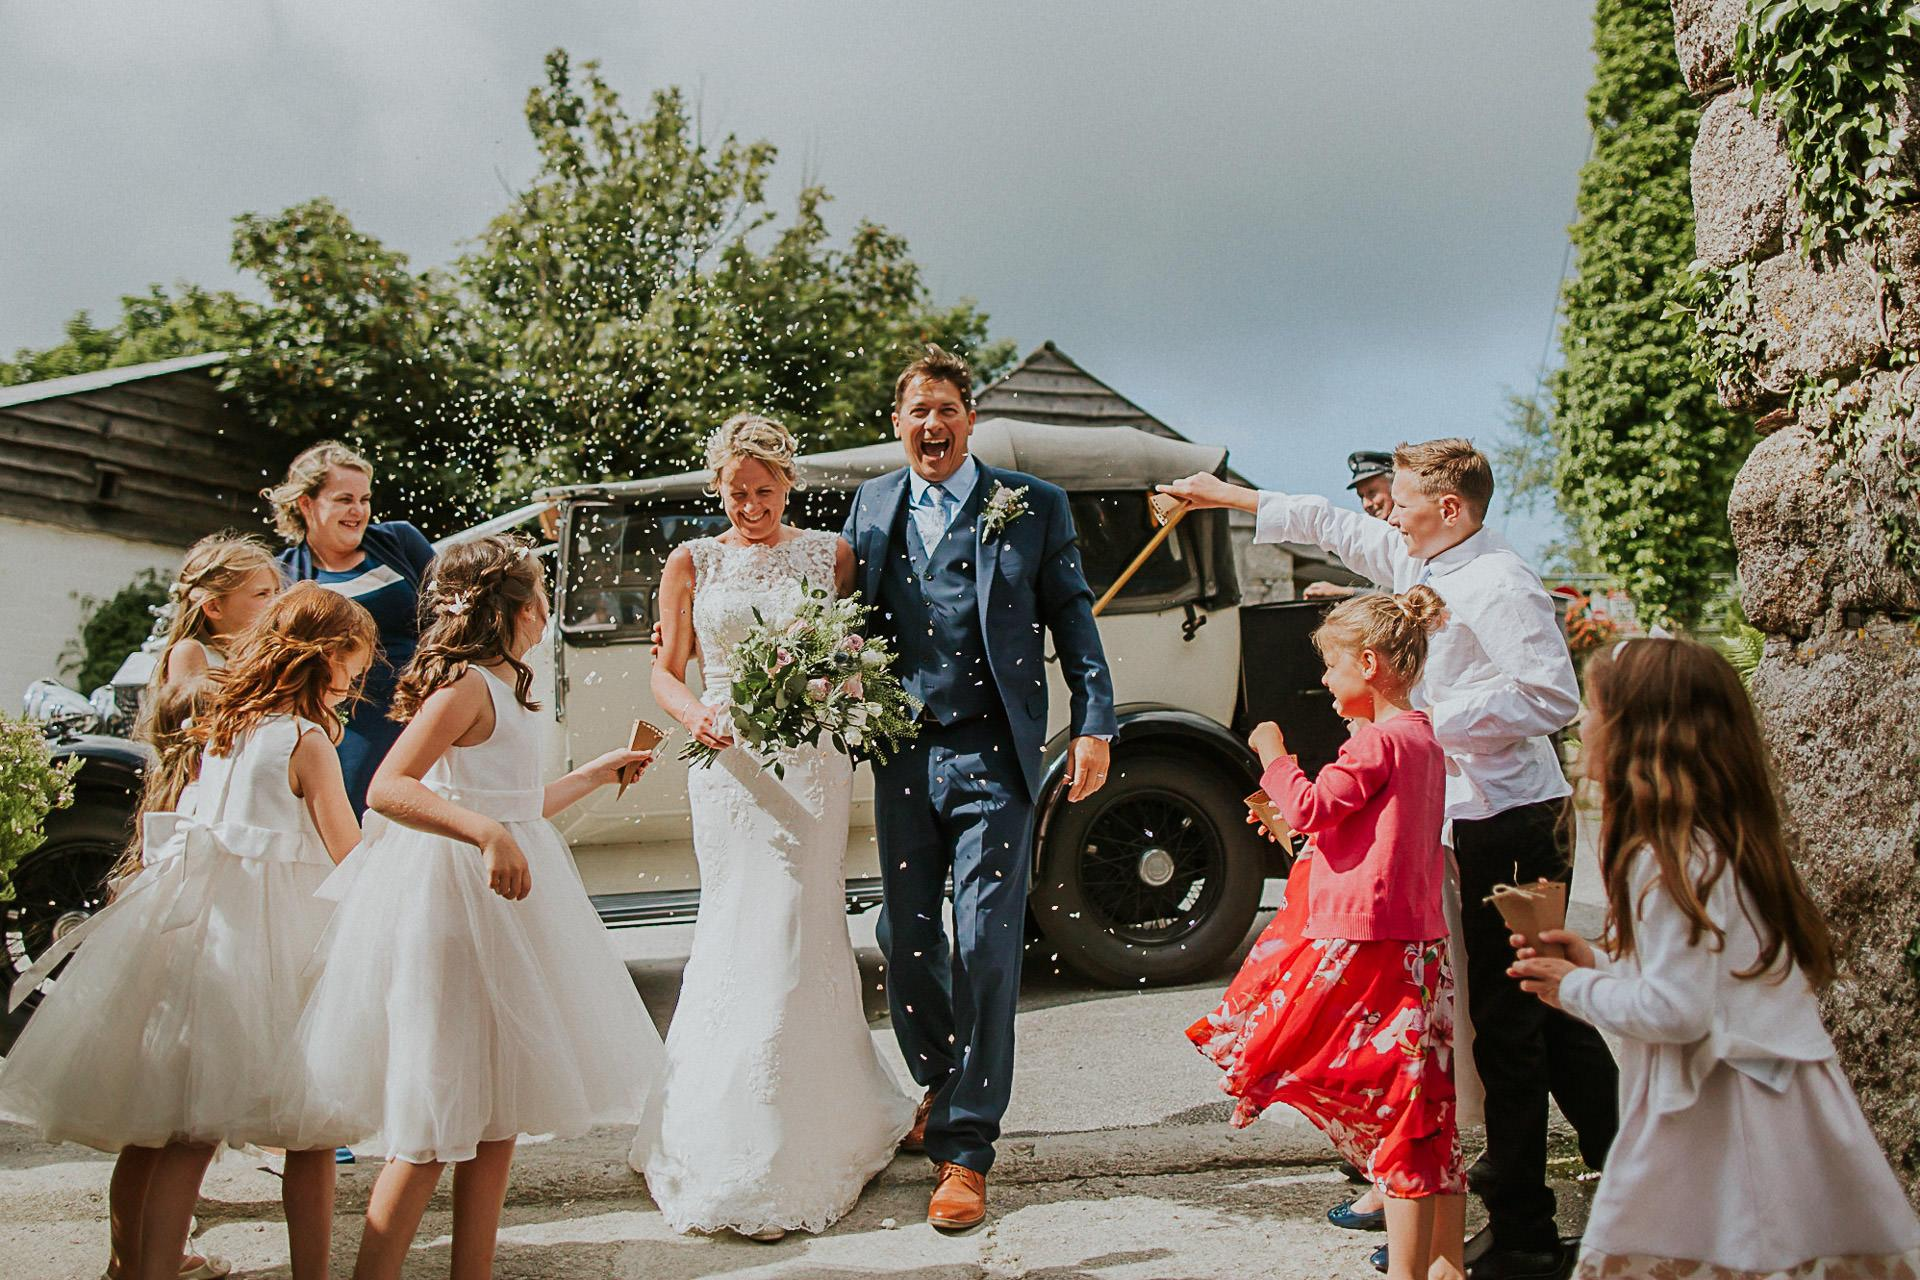 Wedding Photographer in Cornwall shooting at Knightor Winery - St Austell